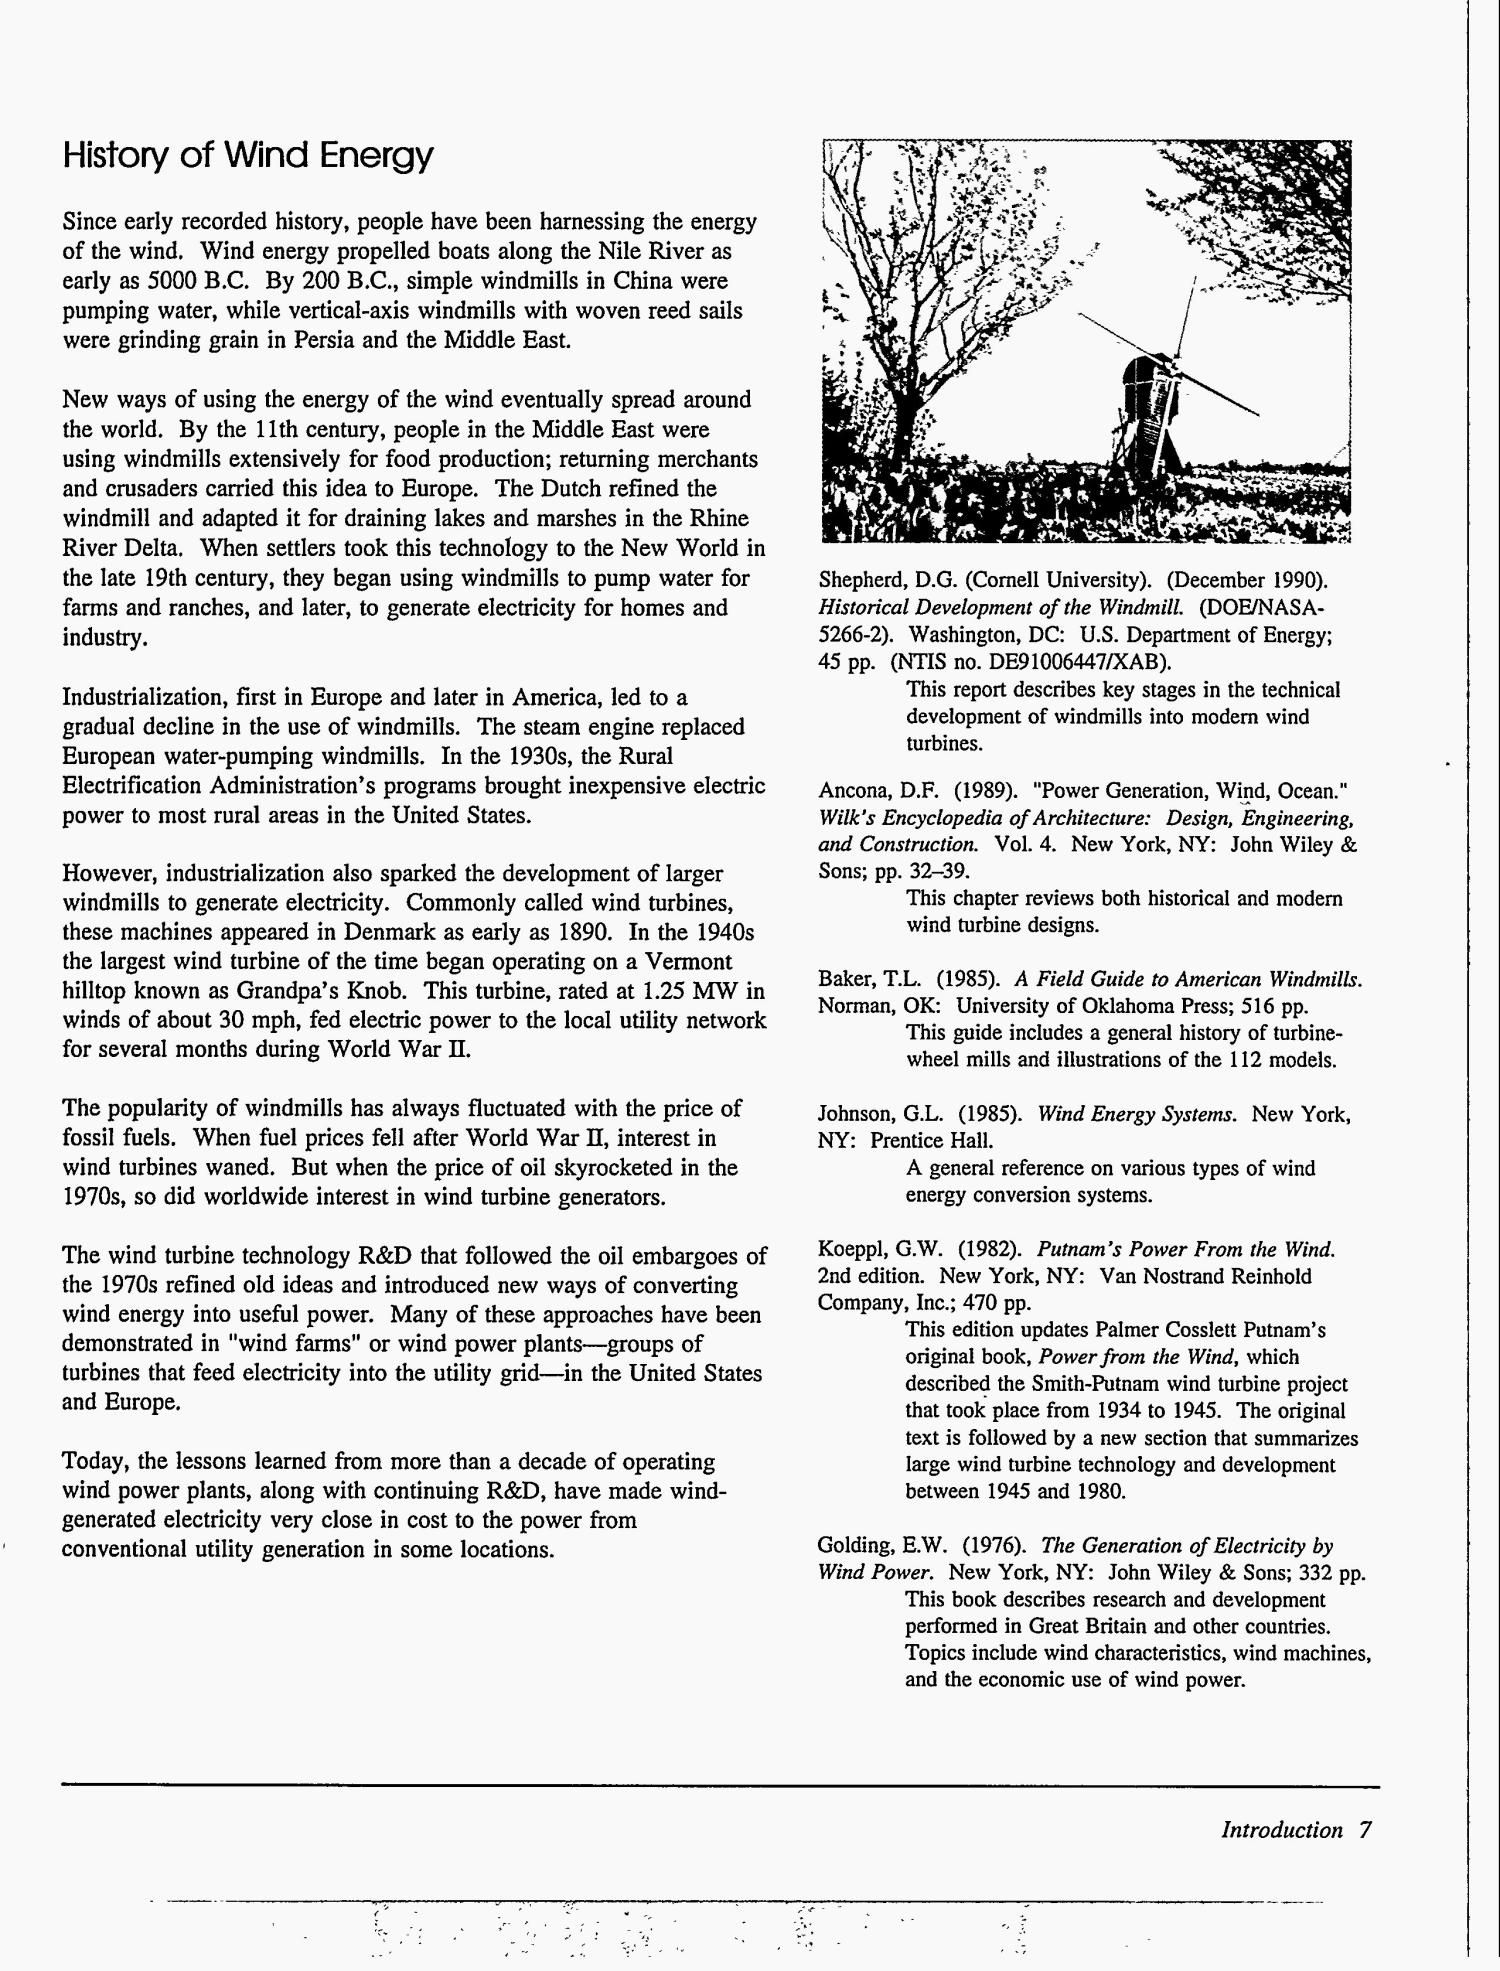 Wind energy information guide - Page 14 of 131 - Digital Library